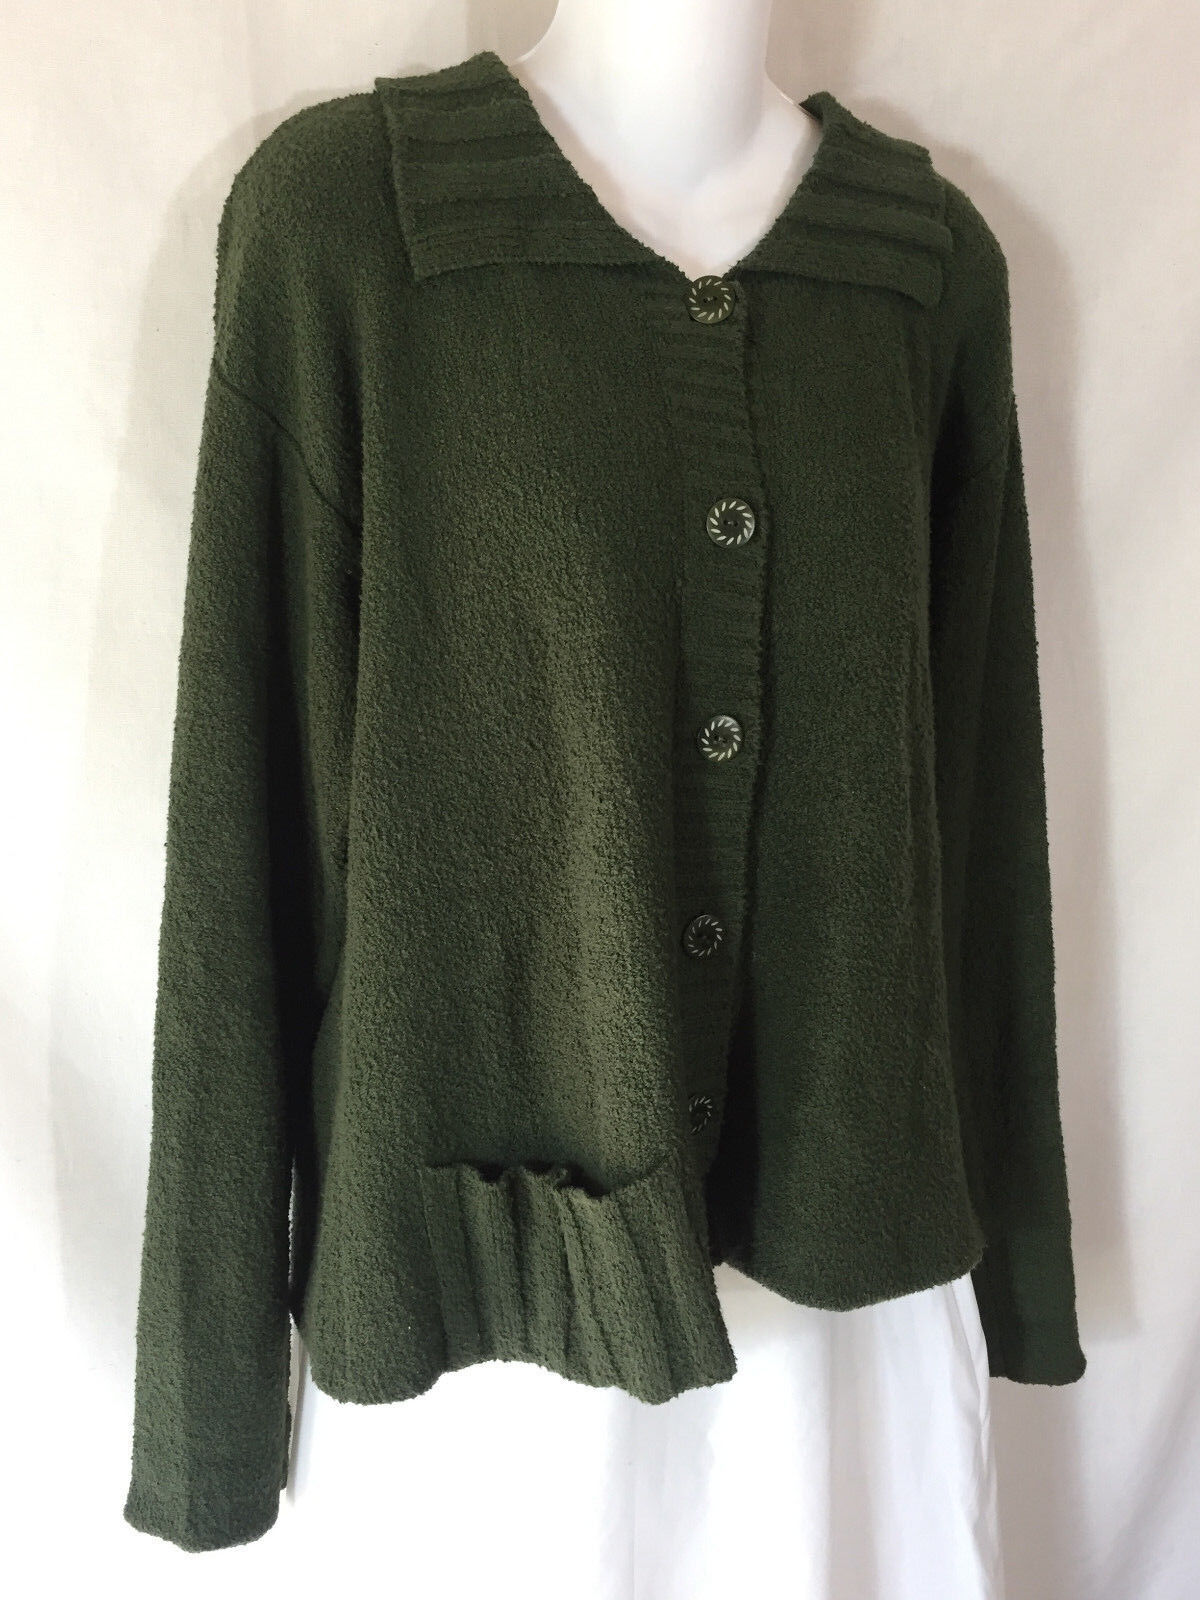 FLAX by Jeanne Engelhart Boxy Green Cotton Button Cardigan Sweater Lagenlook S M